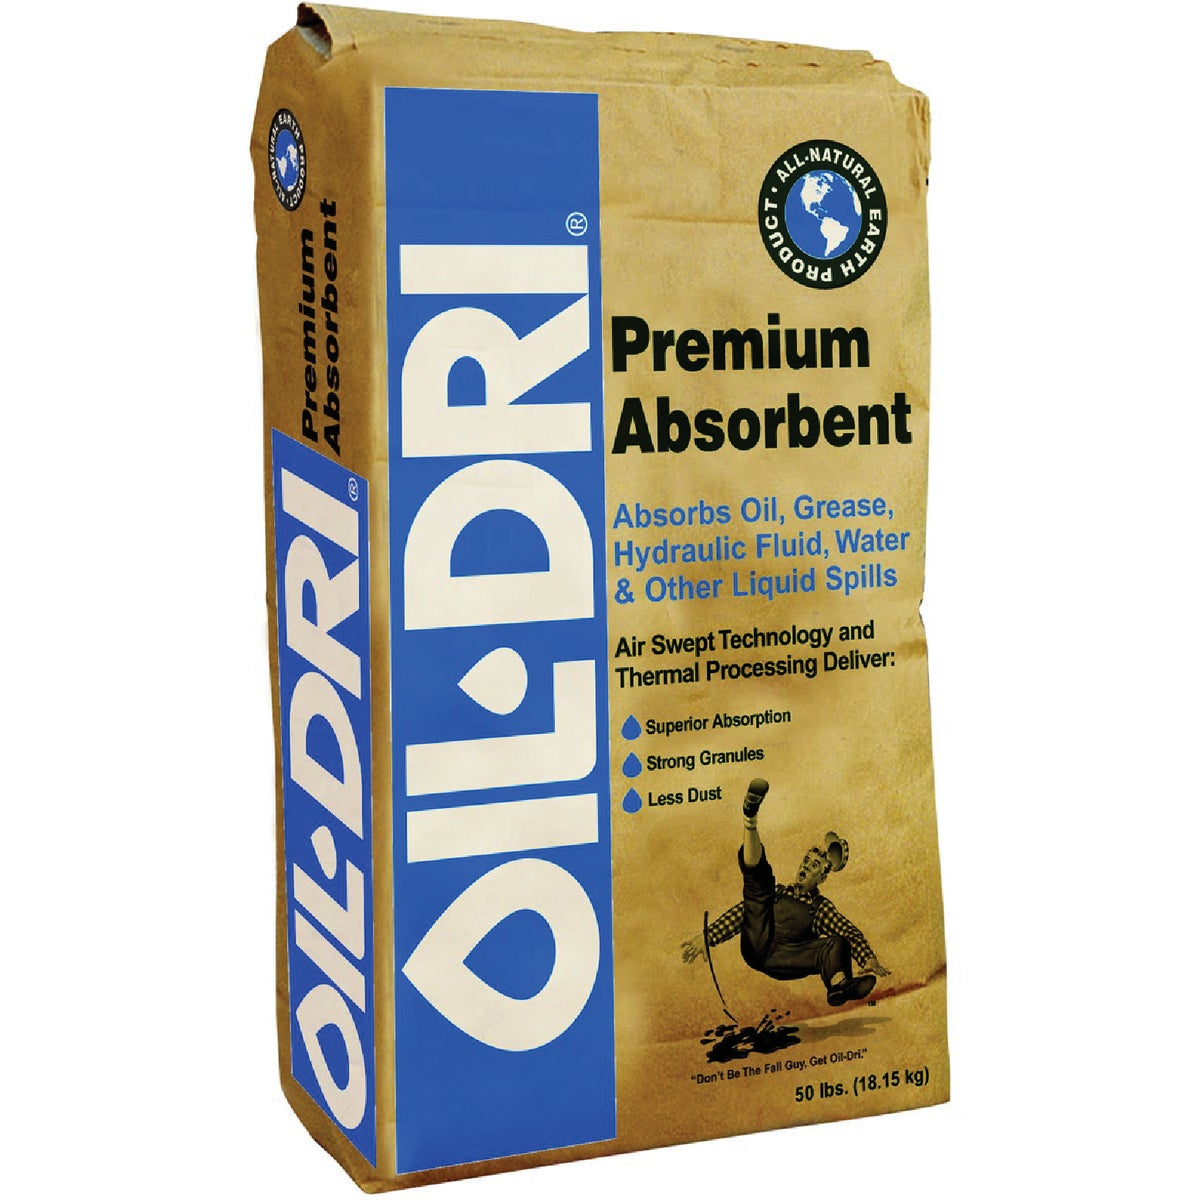 50LB OIL-DRY ABSORBENT